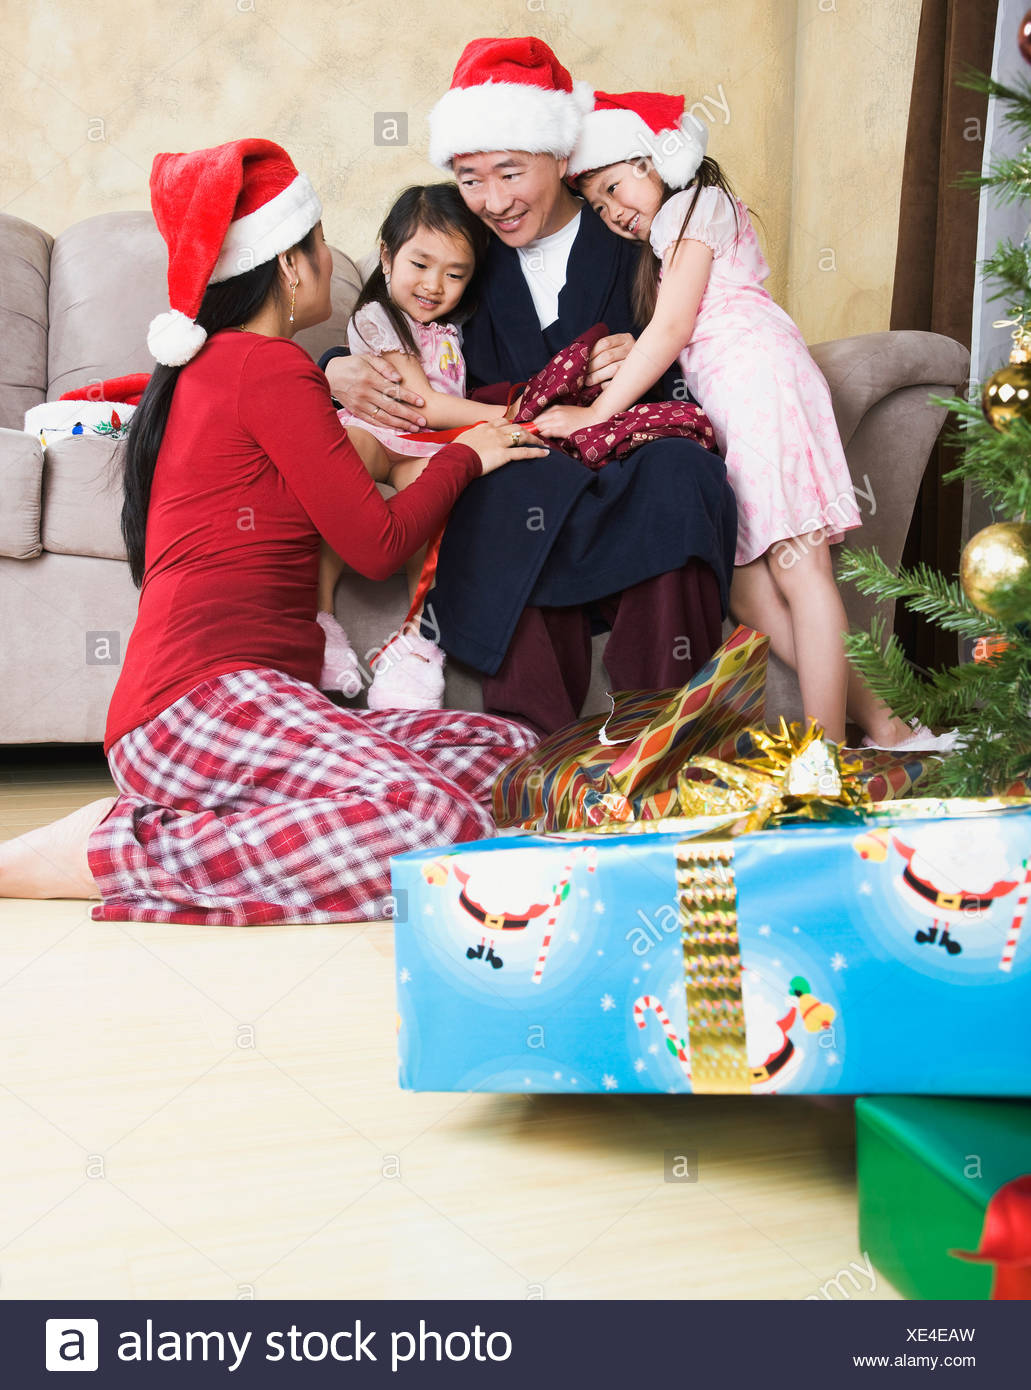 Asian family bonding on Christmas morning - Stock Image